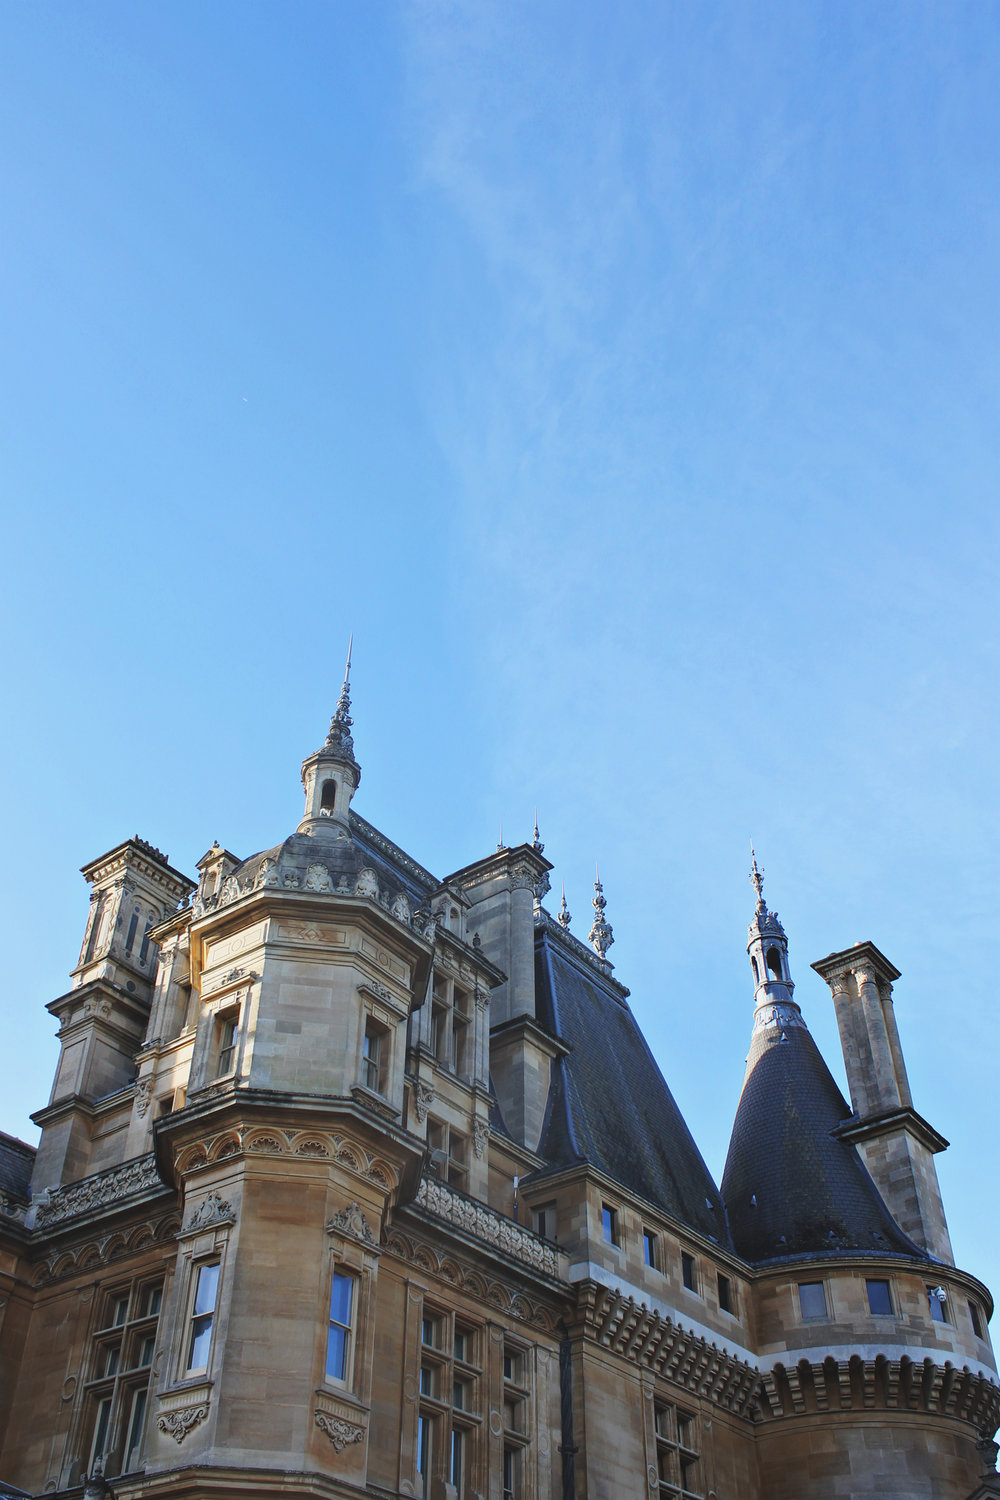 waddesdon-manor-winter-sun-1.jpg